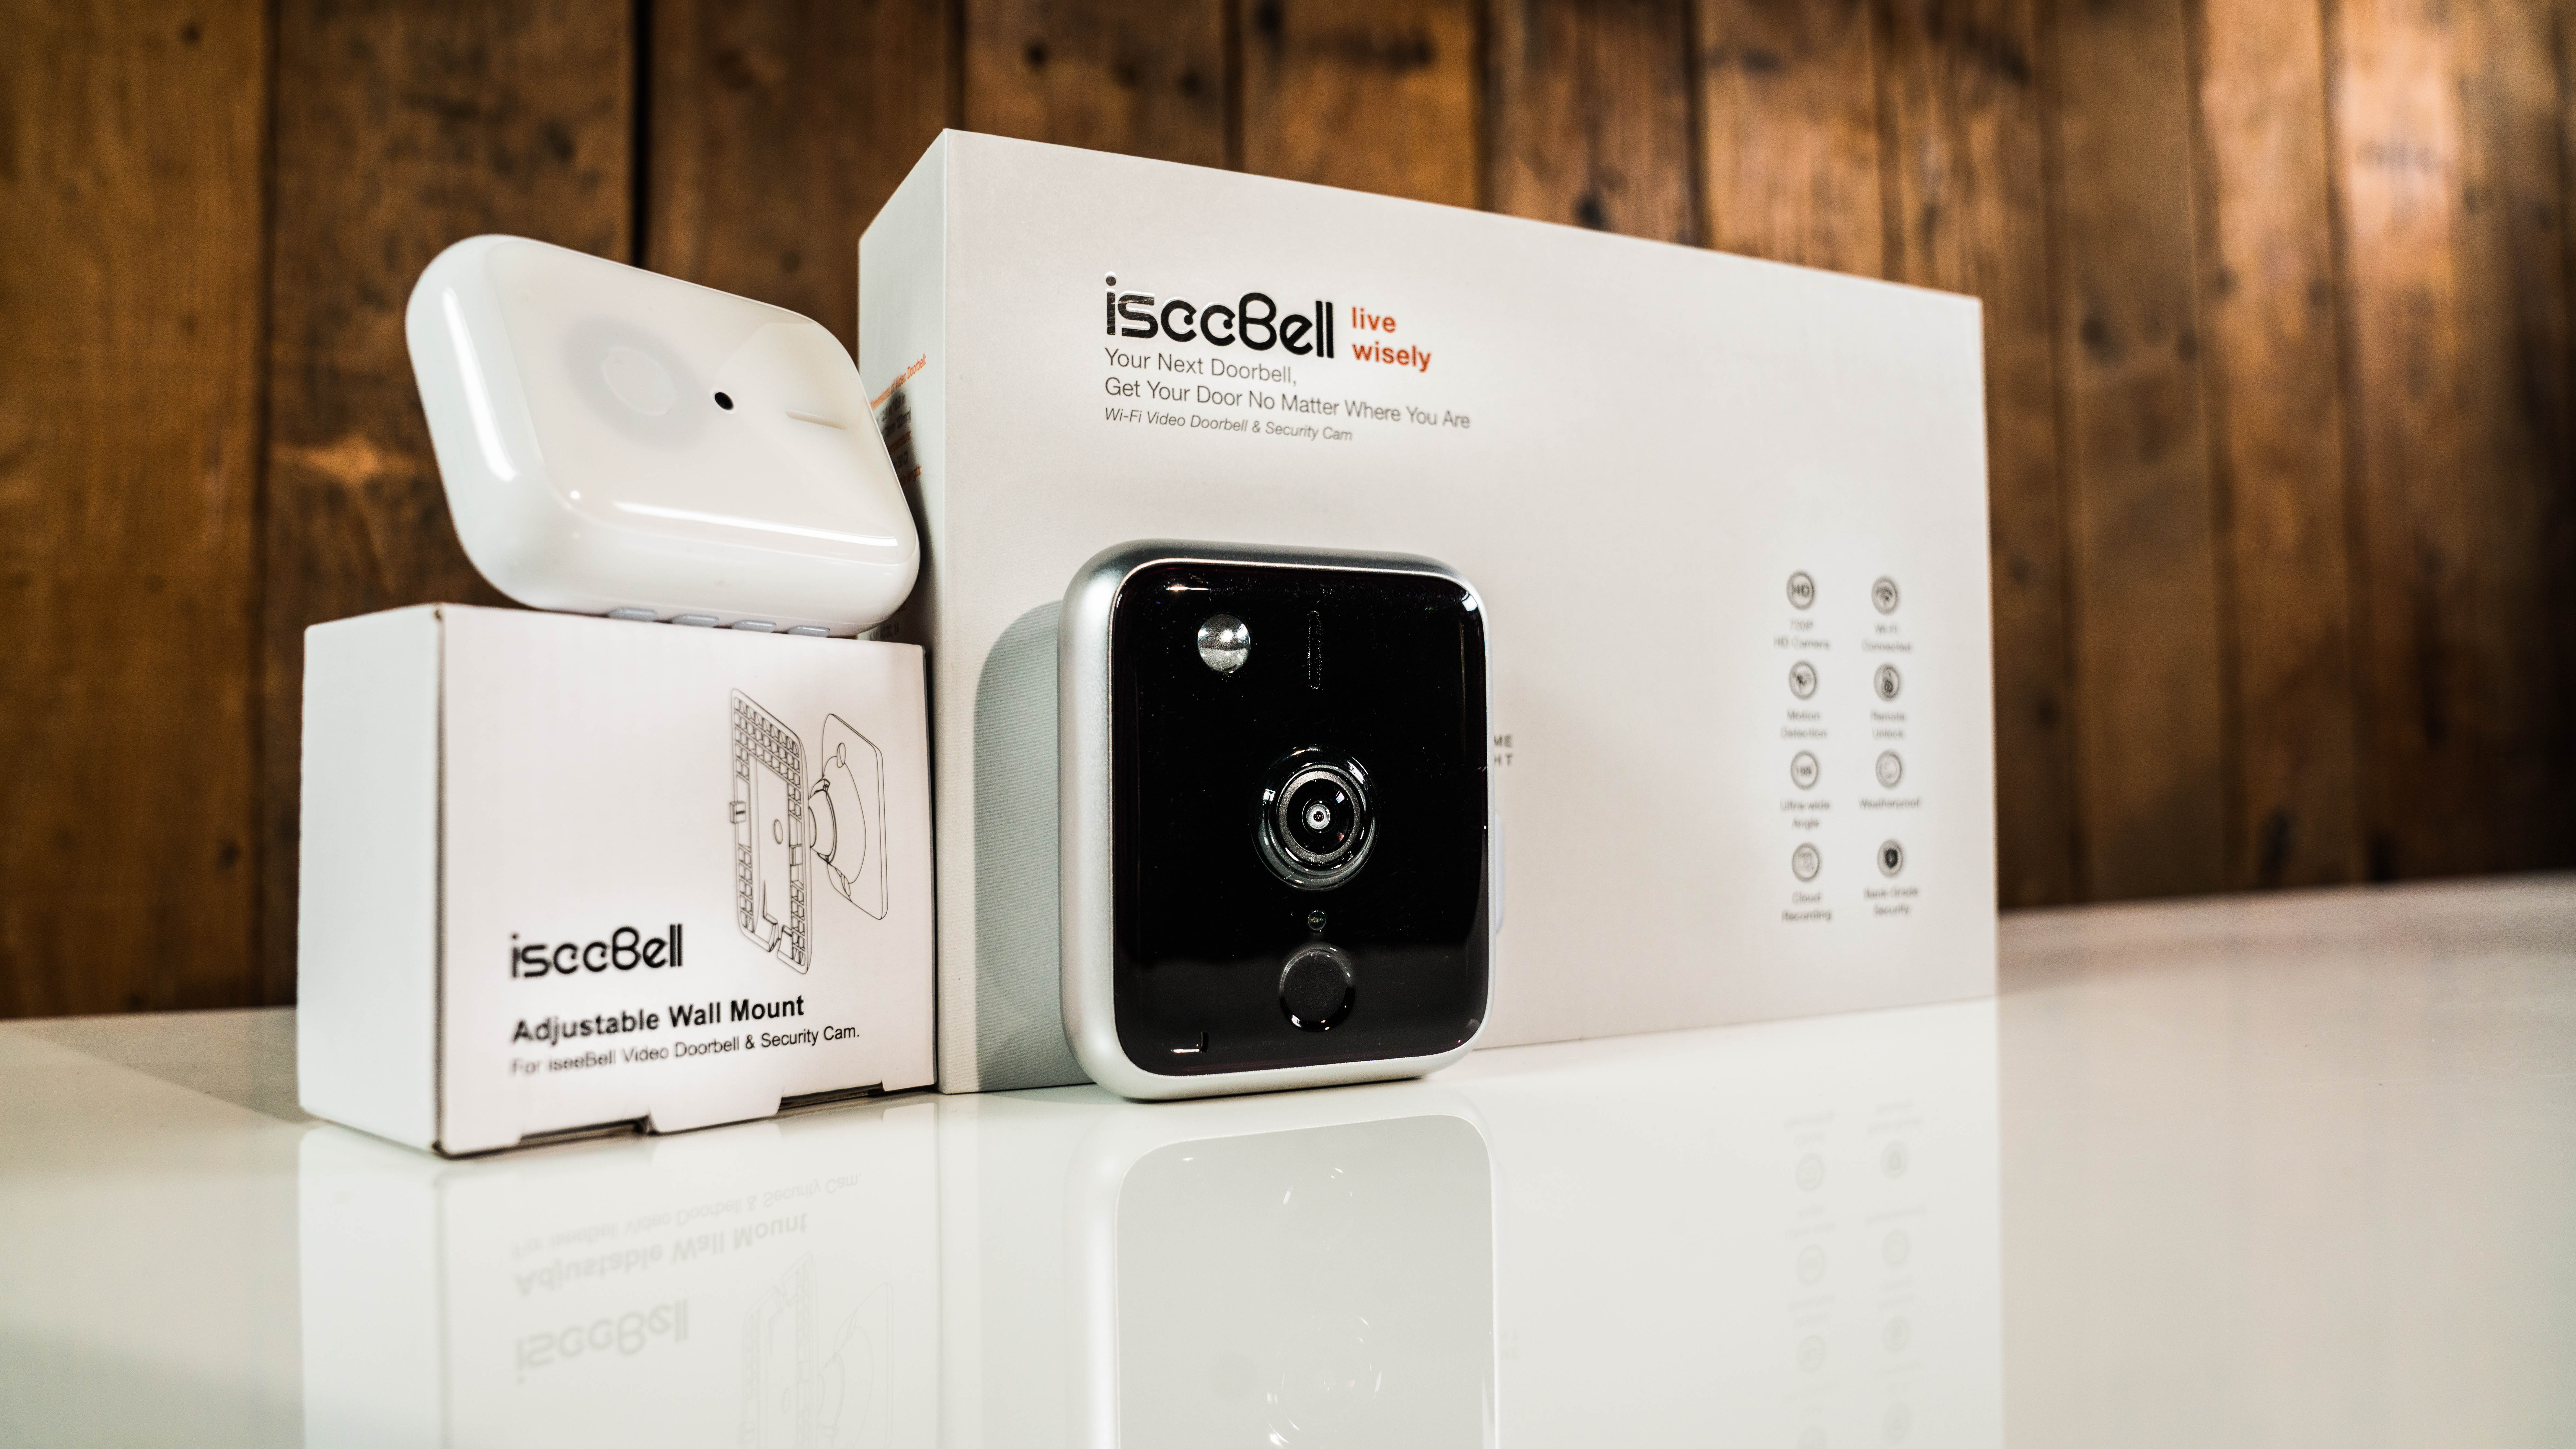 iseeBell is an up-and-coming smart doorbell company, using a small-form with some unique features to set it apart from the crowd.